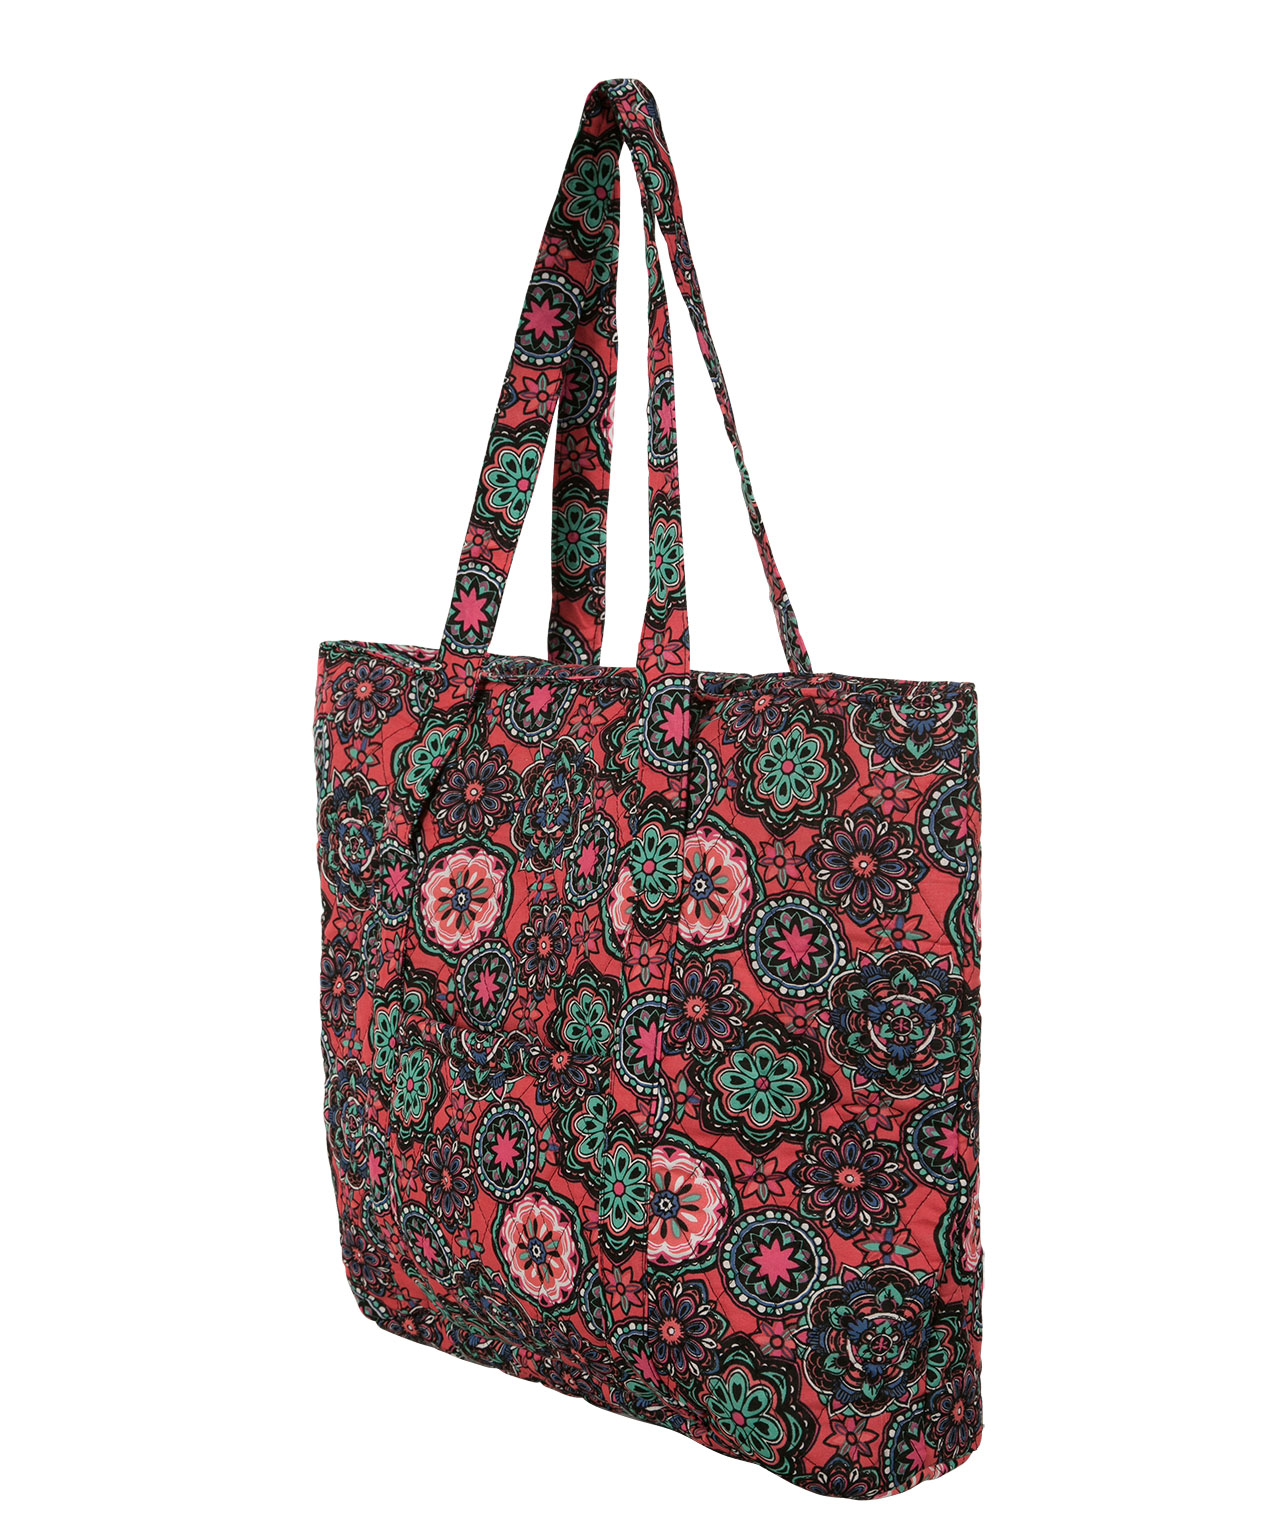 Quilted Floral Print Tote Bag | Rickis : quilted floral tote bags - Adamdwight.com